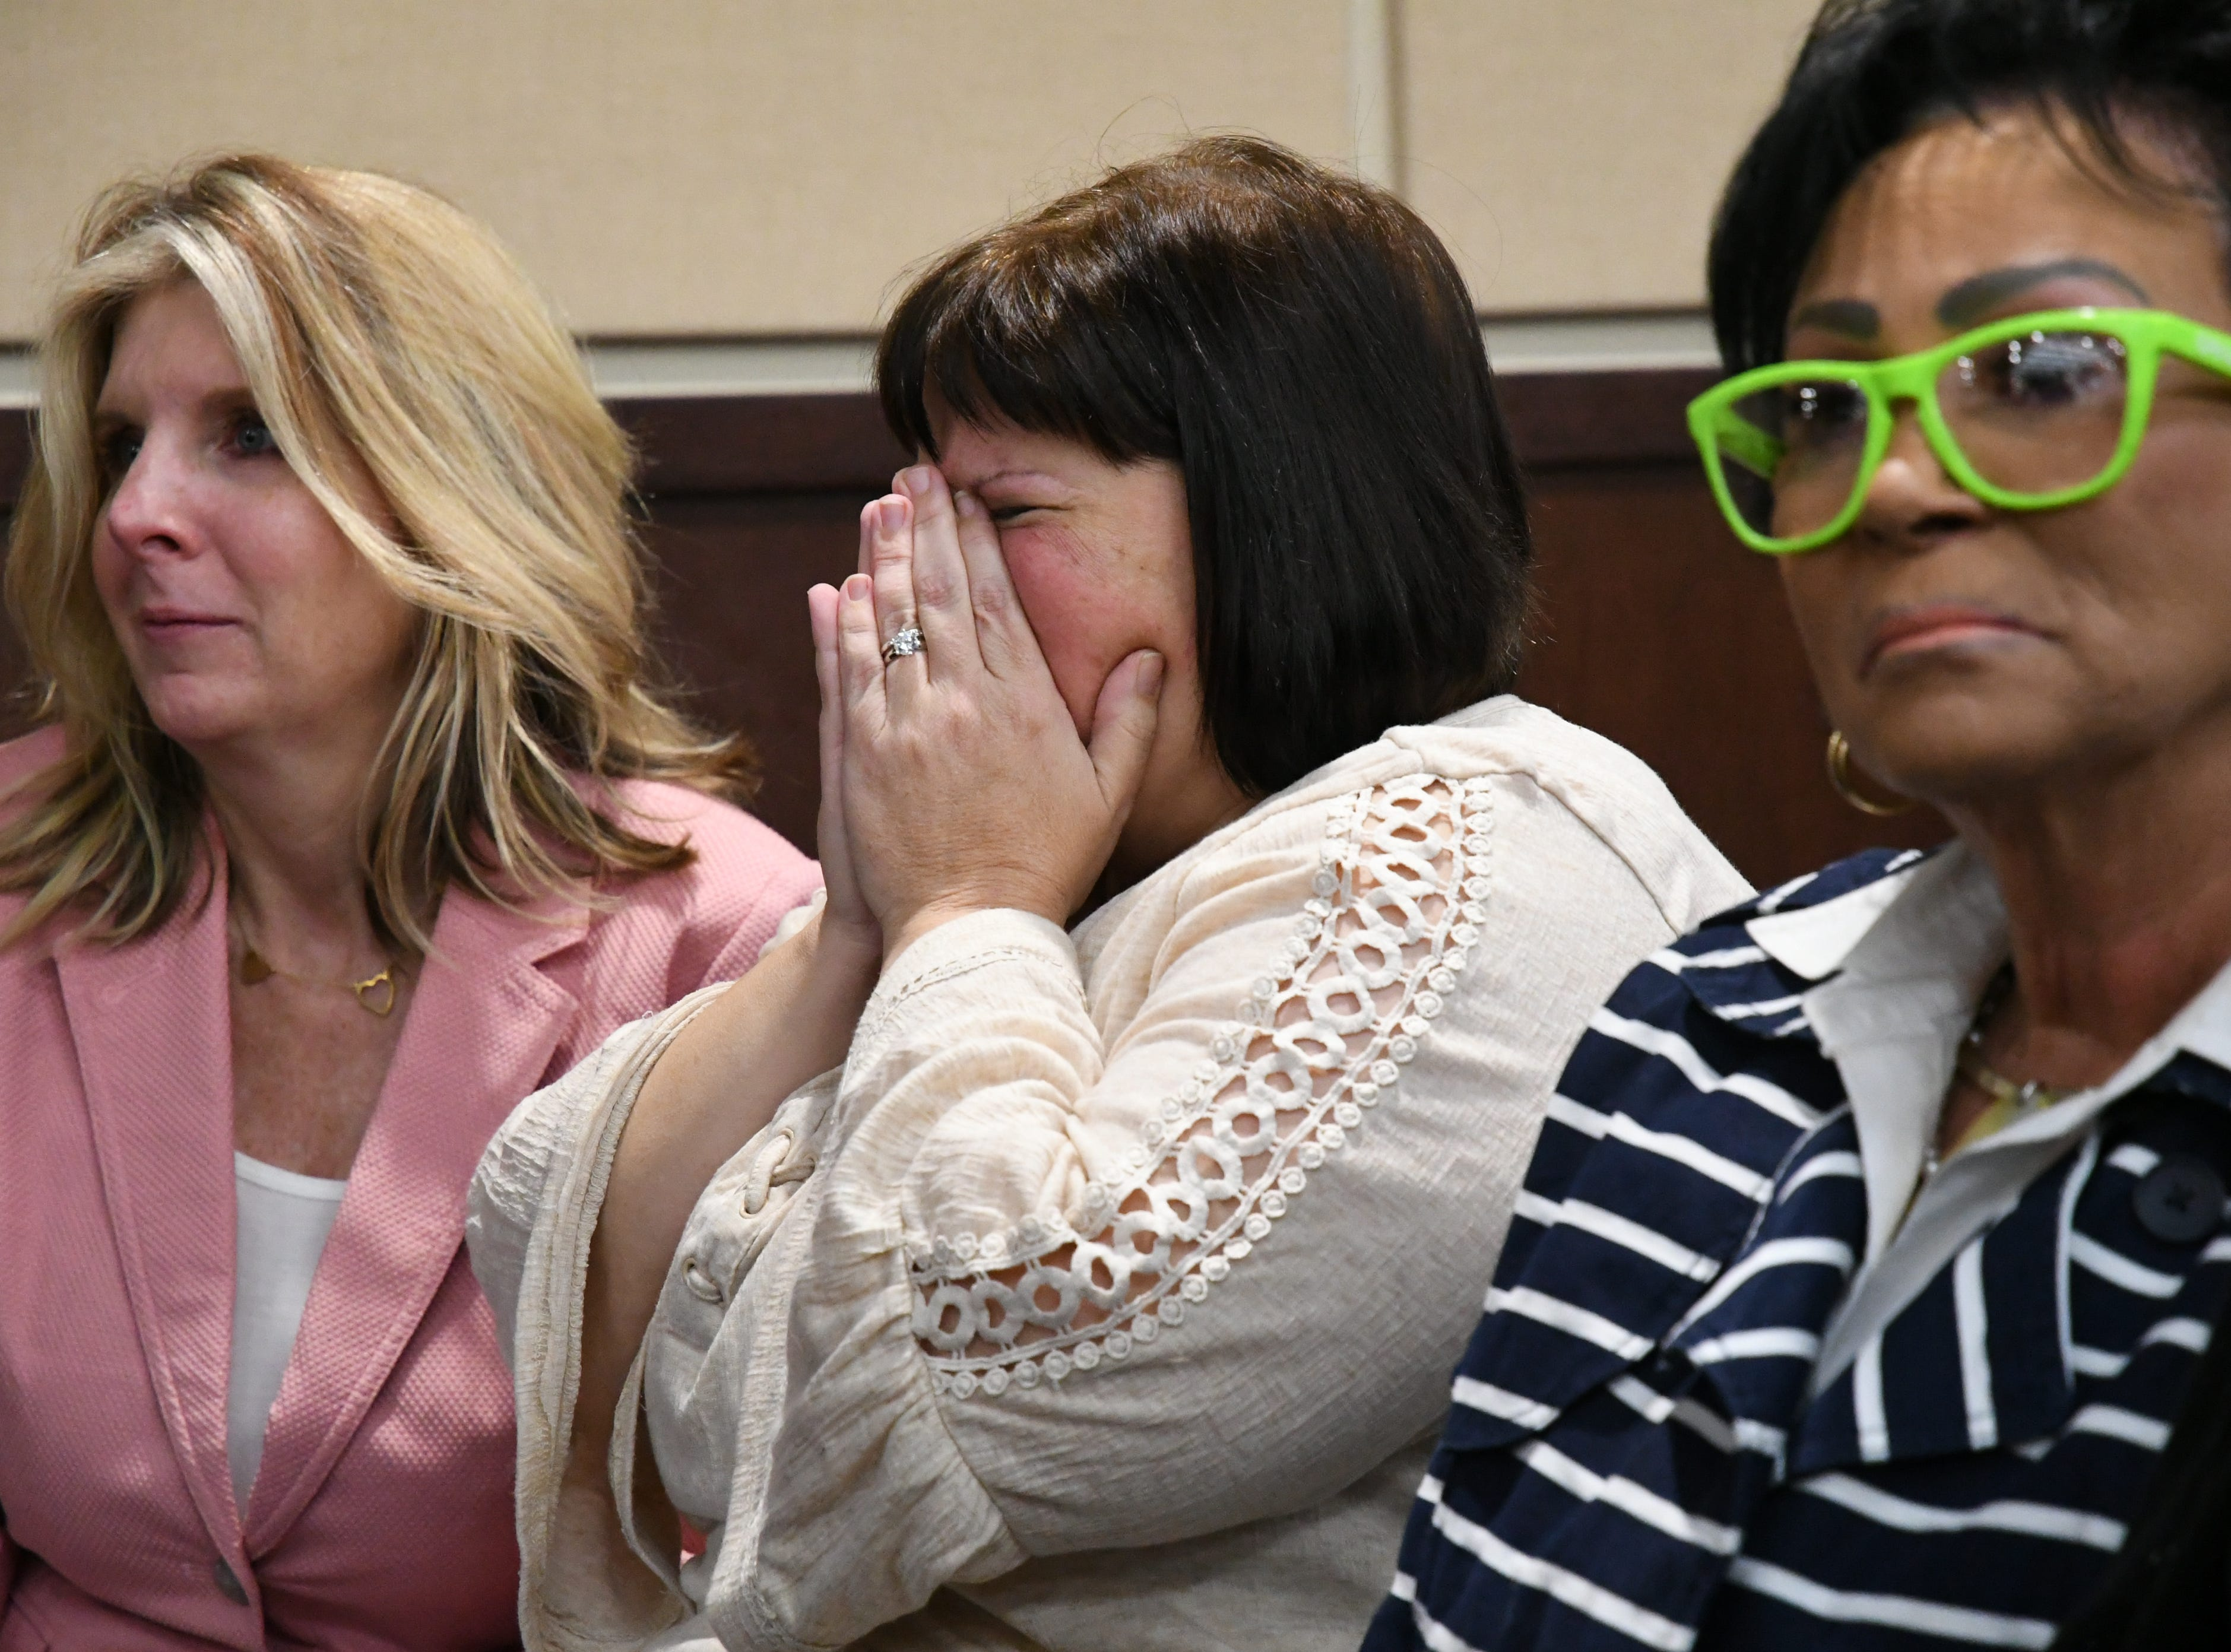 A flood of emotions pours out into the courtroom as the verdicts are read in the trial against Denise Williams for the murder of her husband Mike Williams, the man who was shot and killed by his high school best friend, Friday, Dec; 14, 2018.